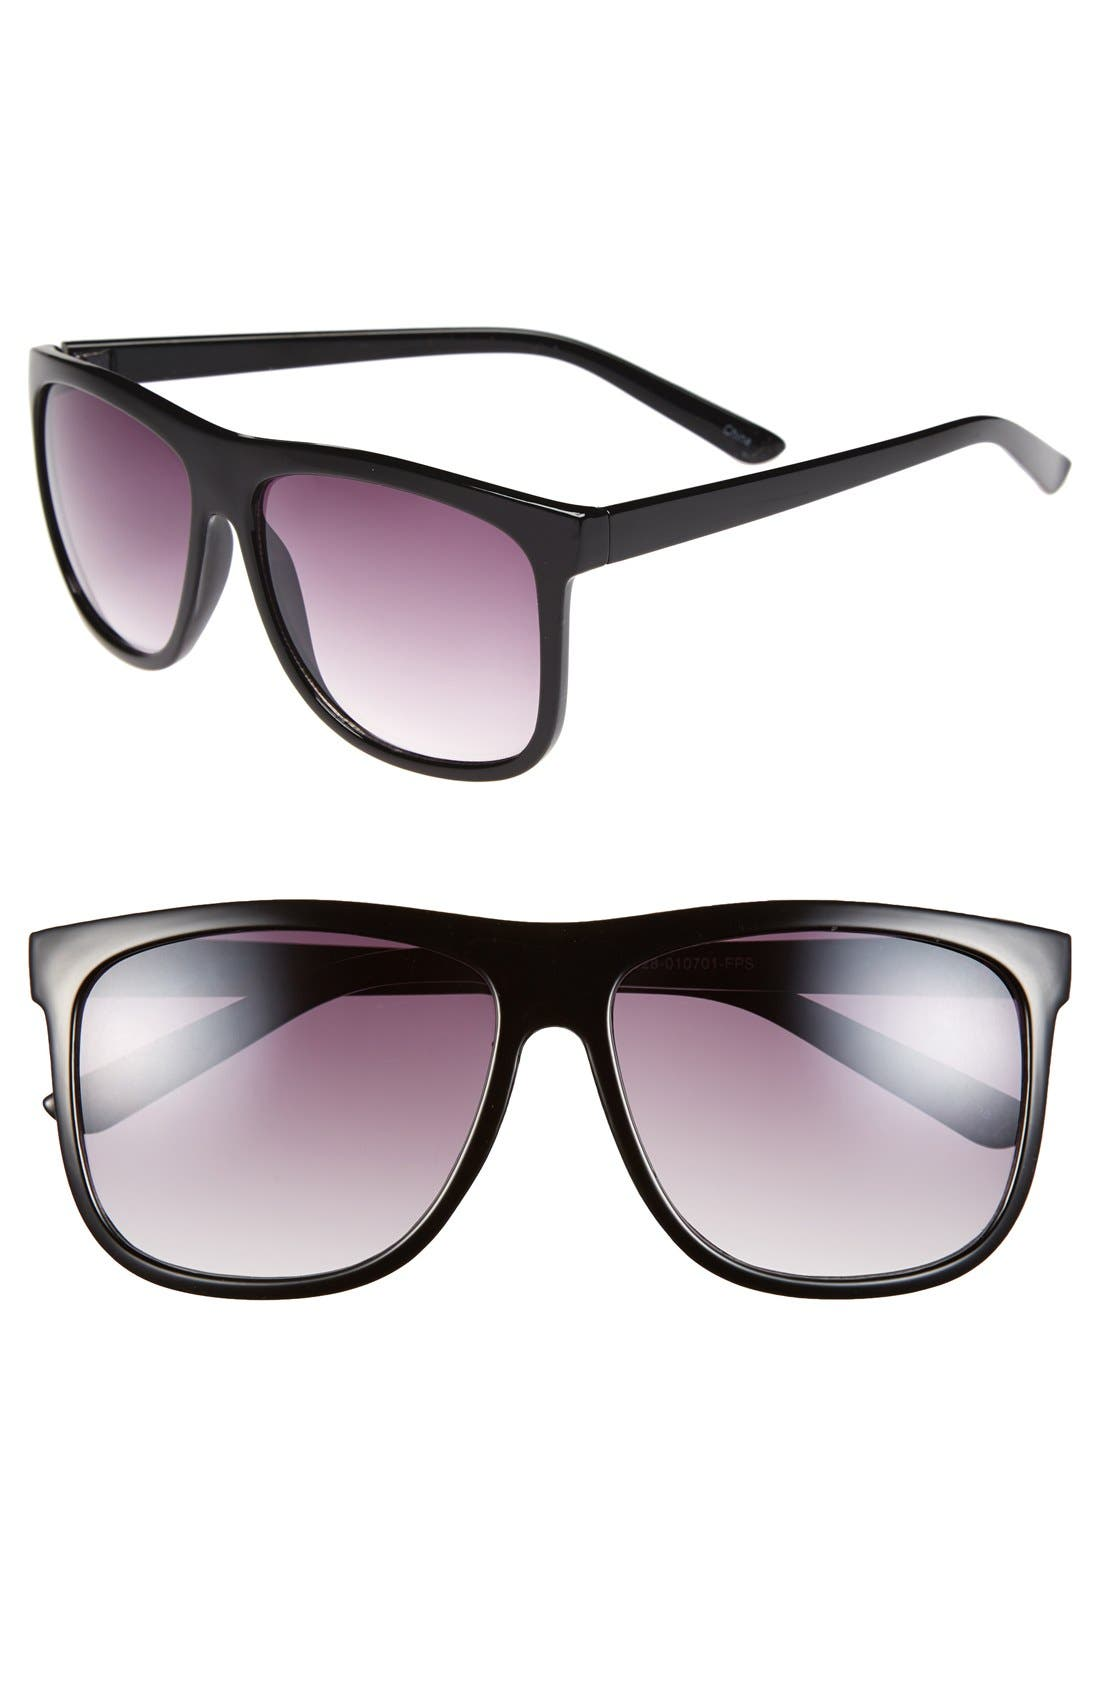 Main Image - Icon Eyewear Retro Sunglasses